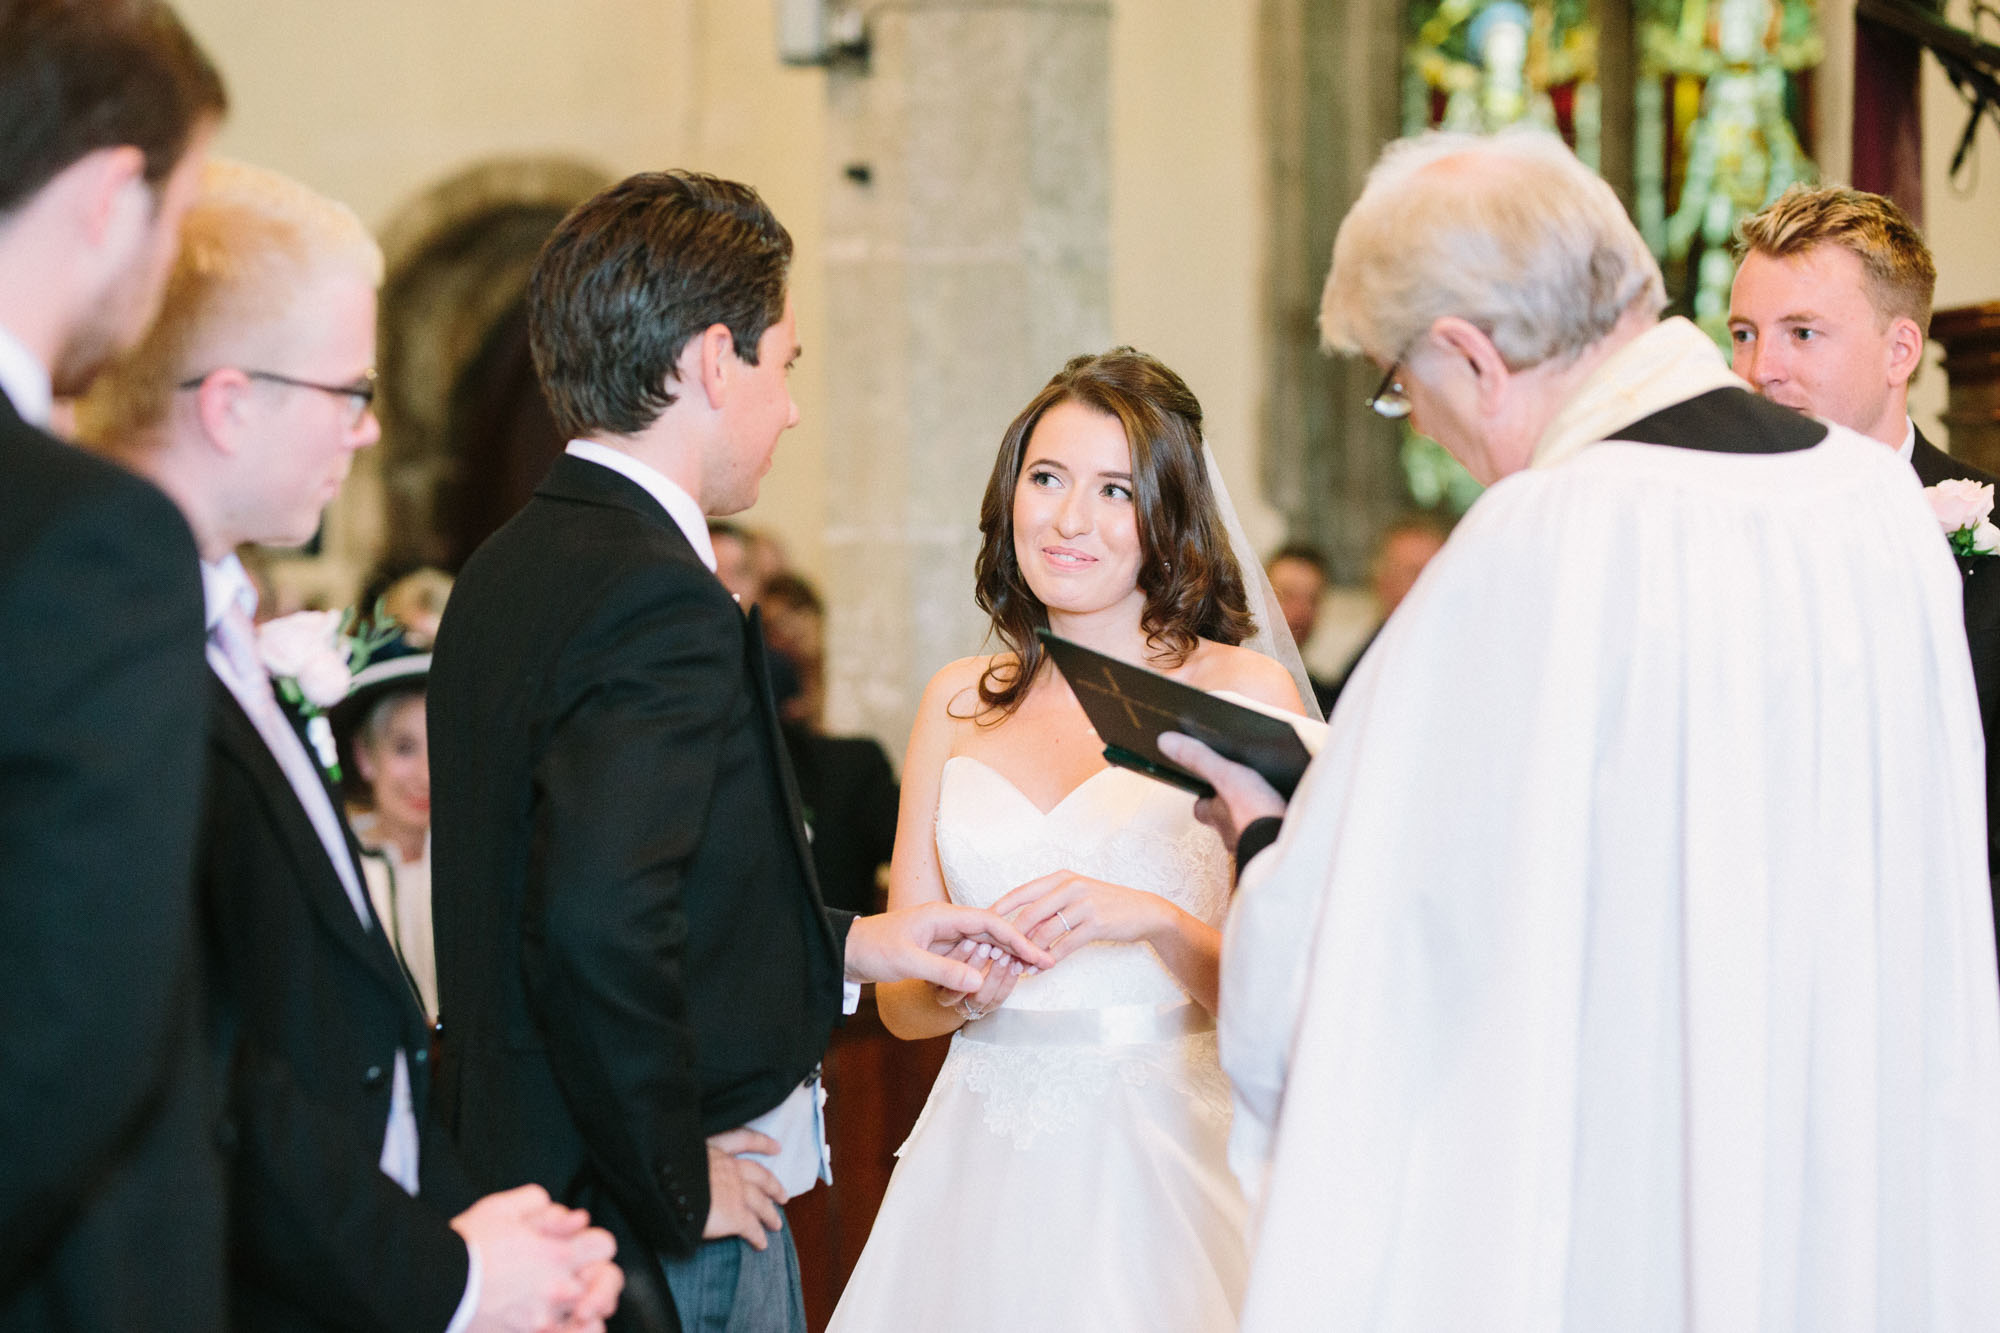 Bride and groom exchanging rings during wedding service at Westbourne Church